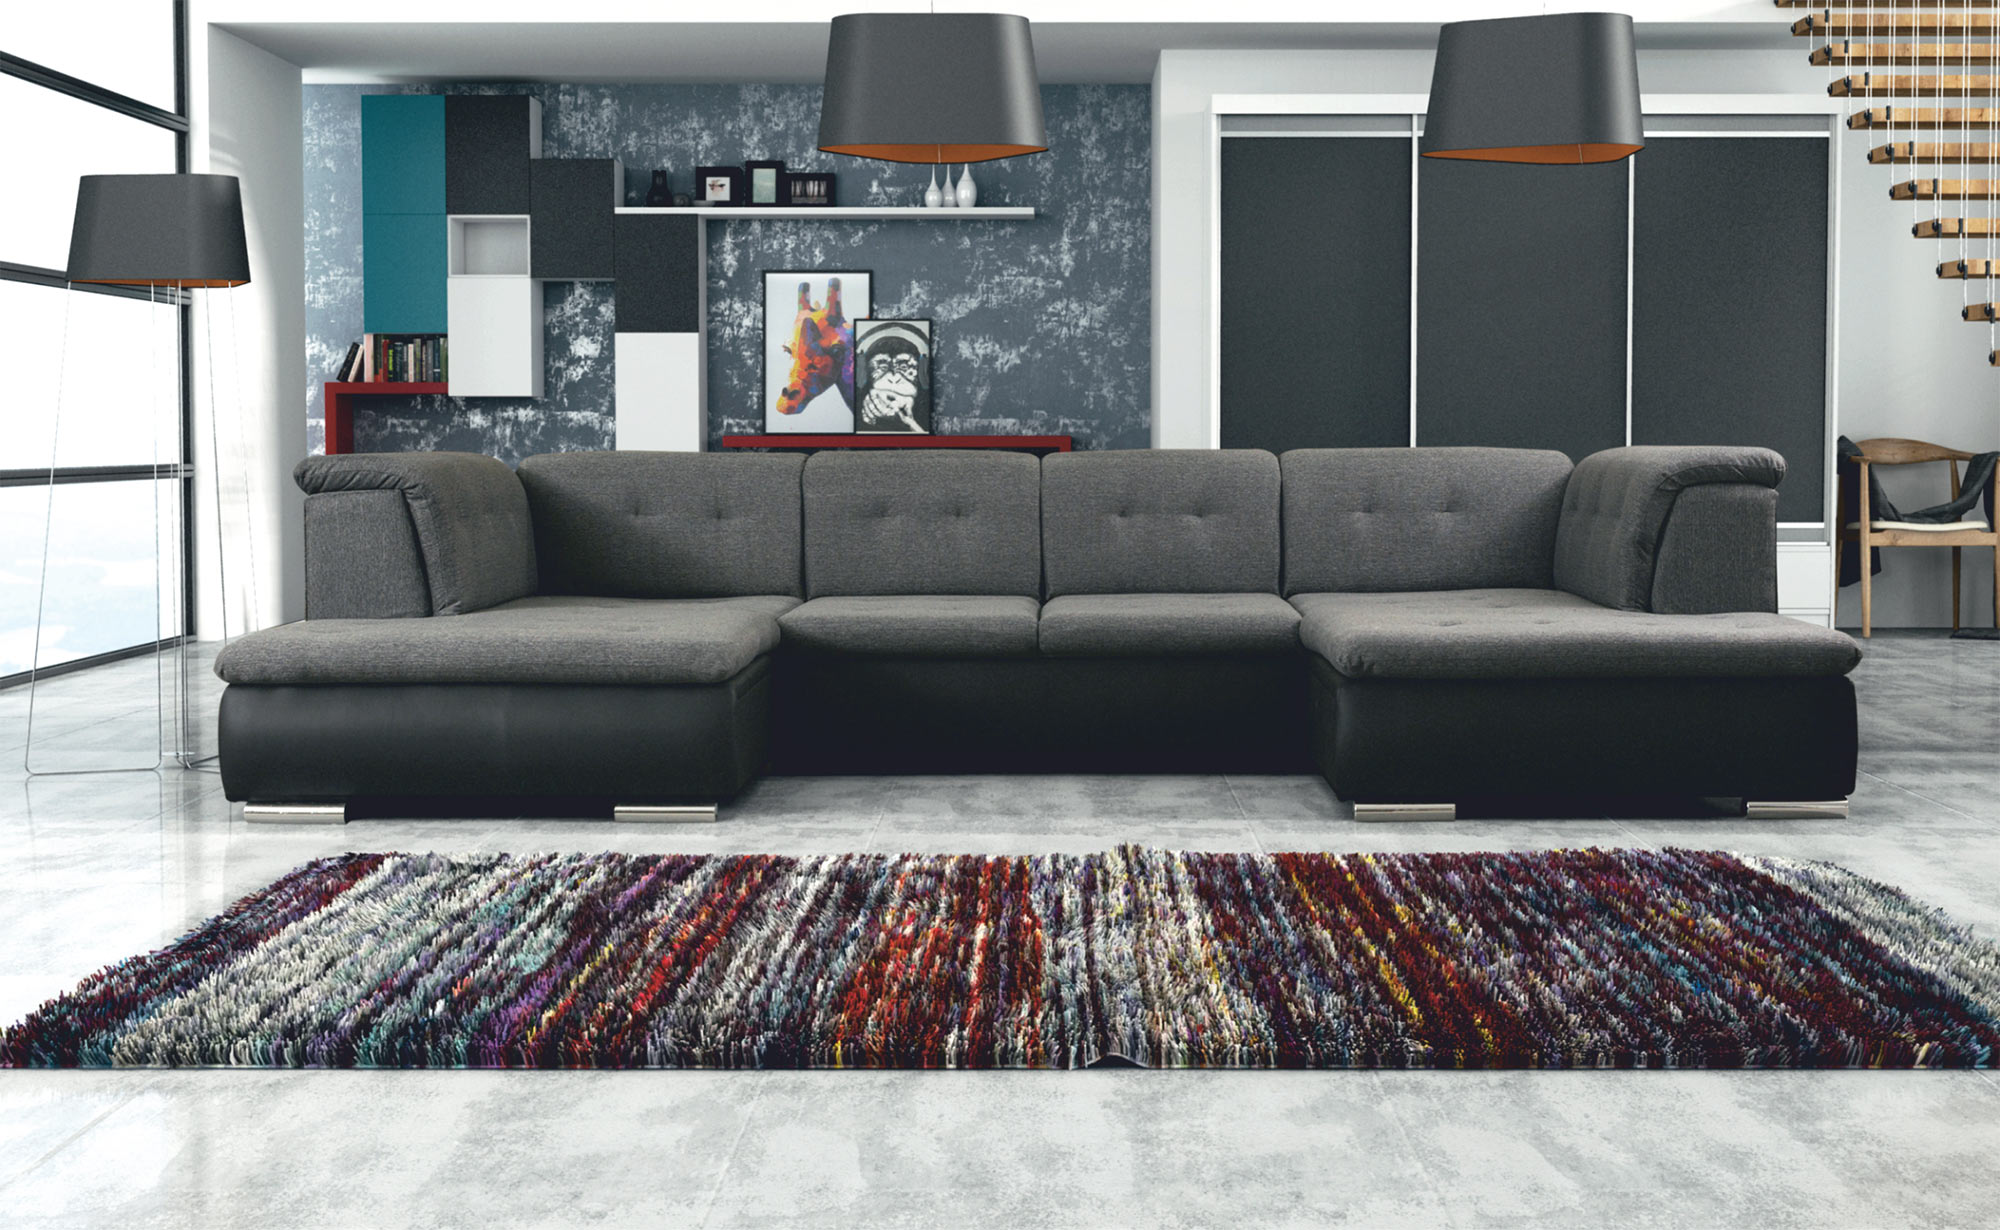 Prime Santiago Gray Sectional Sofa By Skyler Designs Gmtry Best Dining Table And Chair Ideas Images Gmtryco